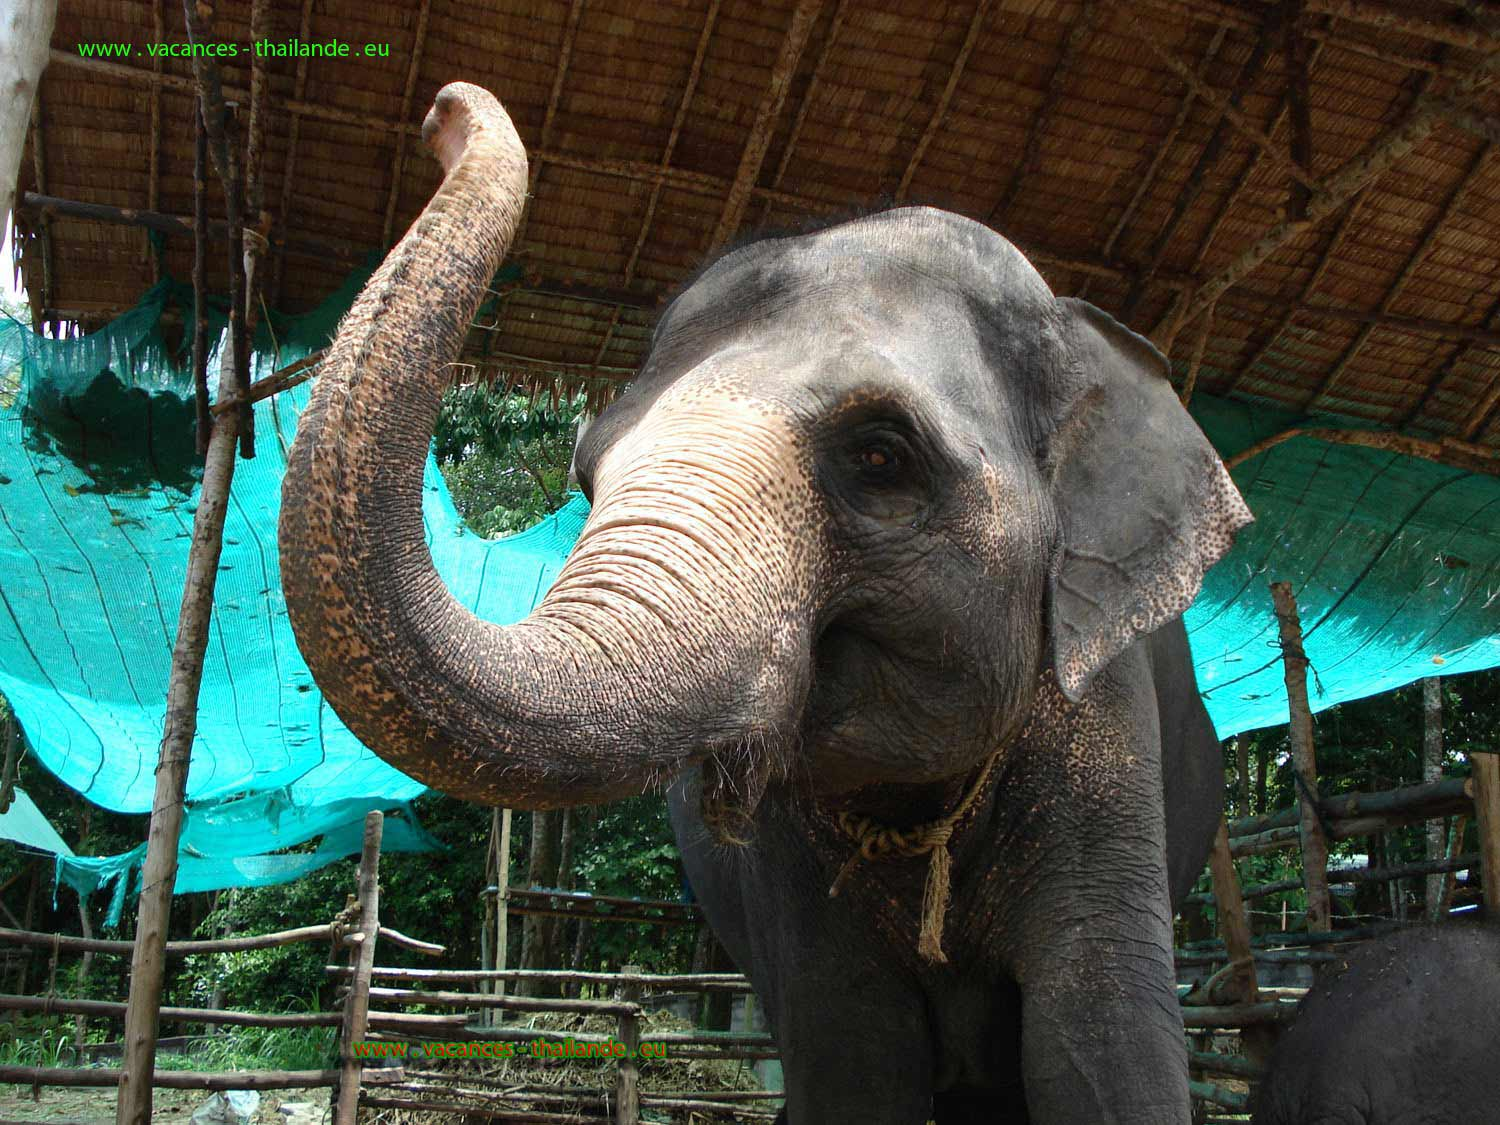 photo 12 English prices of rent, the elephant walks on the island of Koh Samui in Thailand